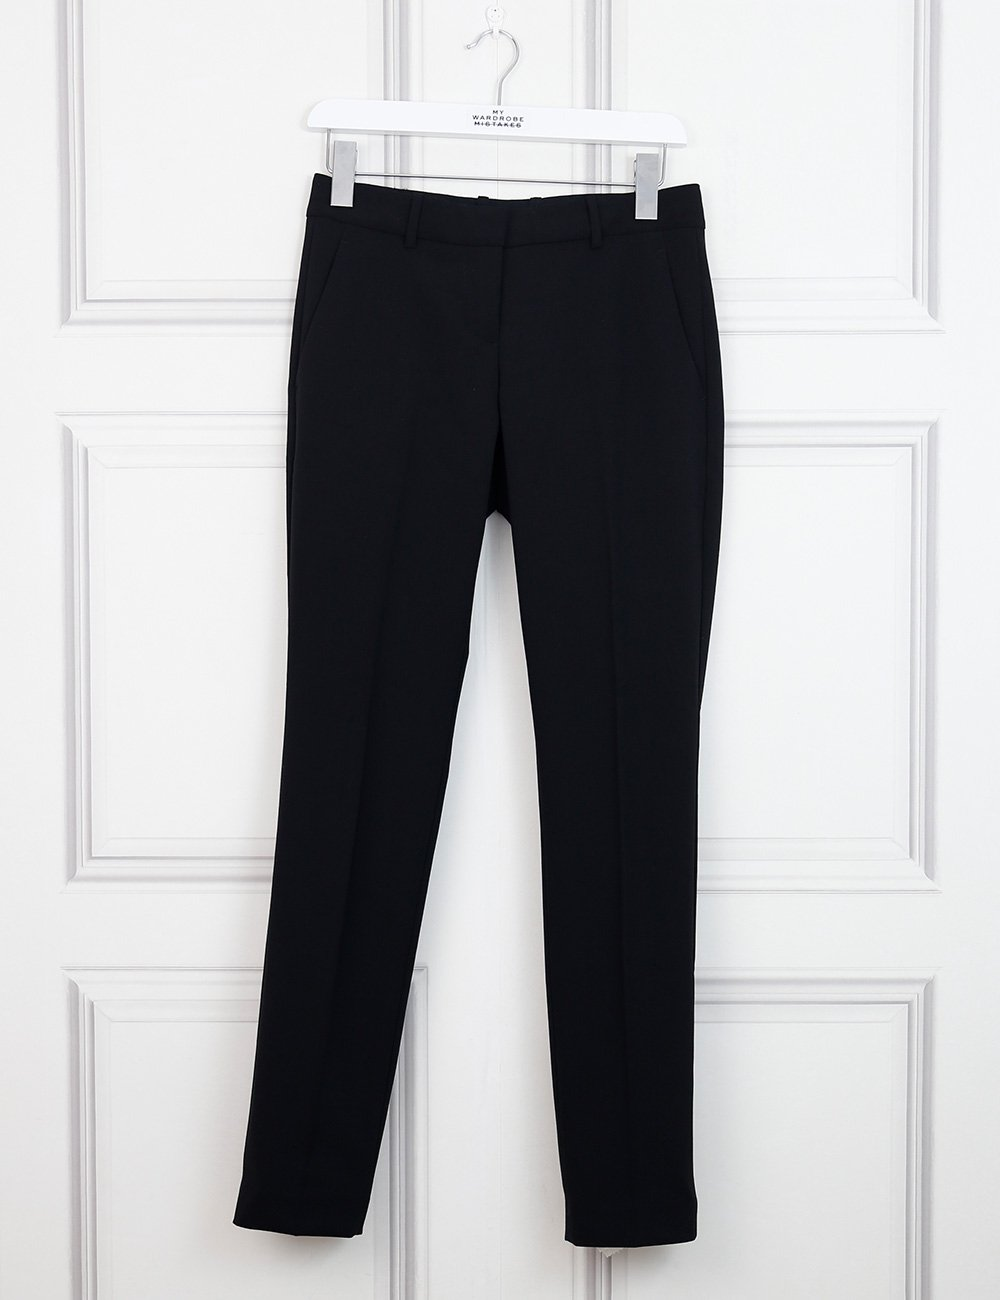 THEORY CLOTHING 6UK-38IT-34FR / Black THEORY Classic tailored trousers with side pockets